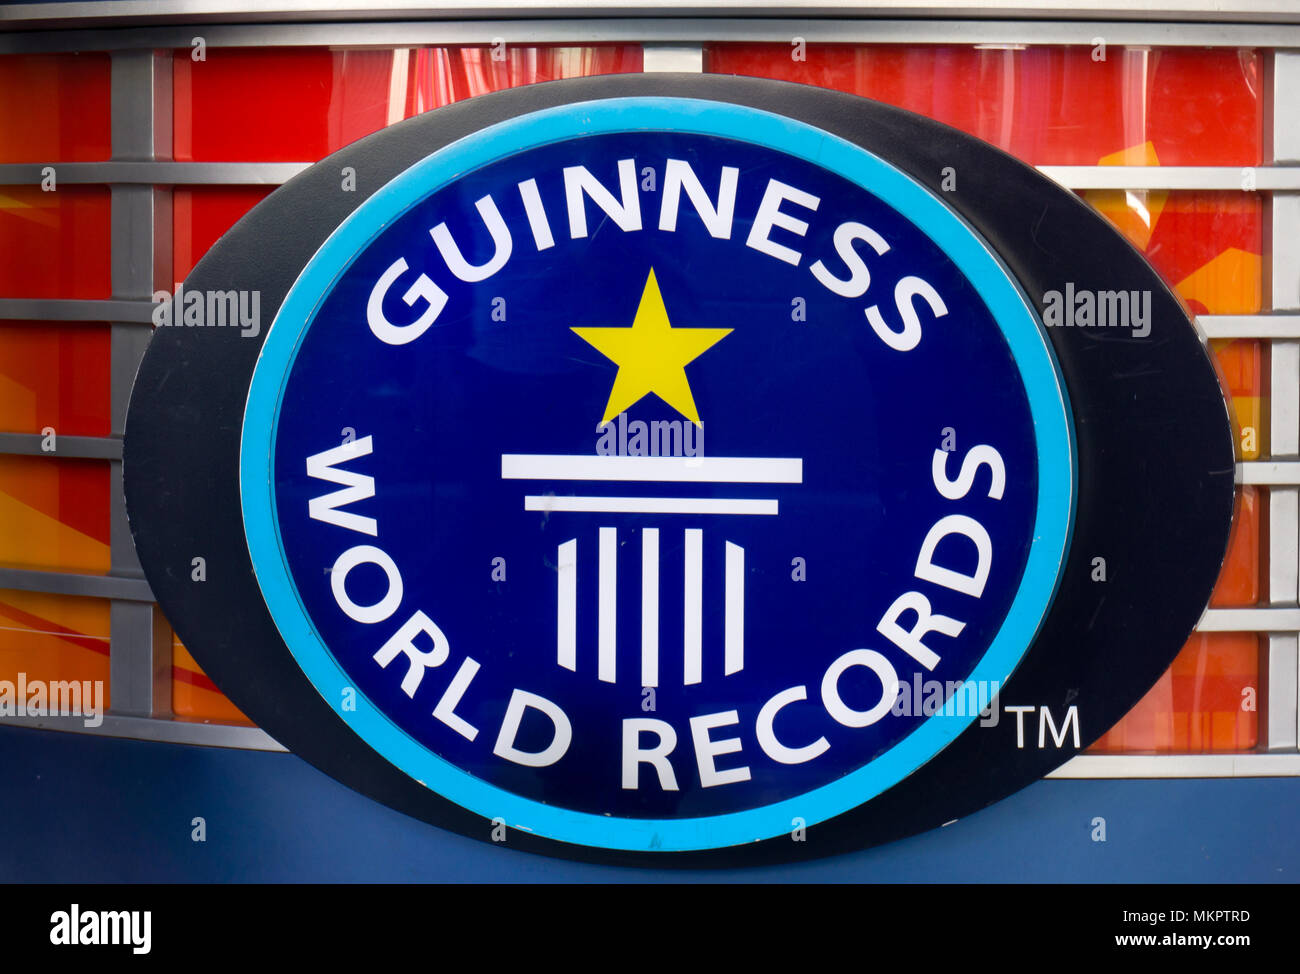 HOLLYWOOD, CA/USA - APRIL 18, 2015: Guinness Museum logo and marquee. The Guinness Museum is an attraction on the Hollywood Walk of Fame. - Stock Image